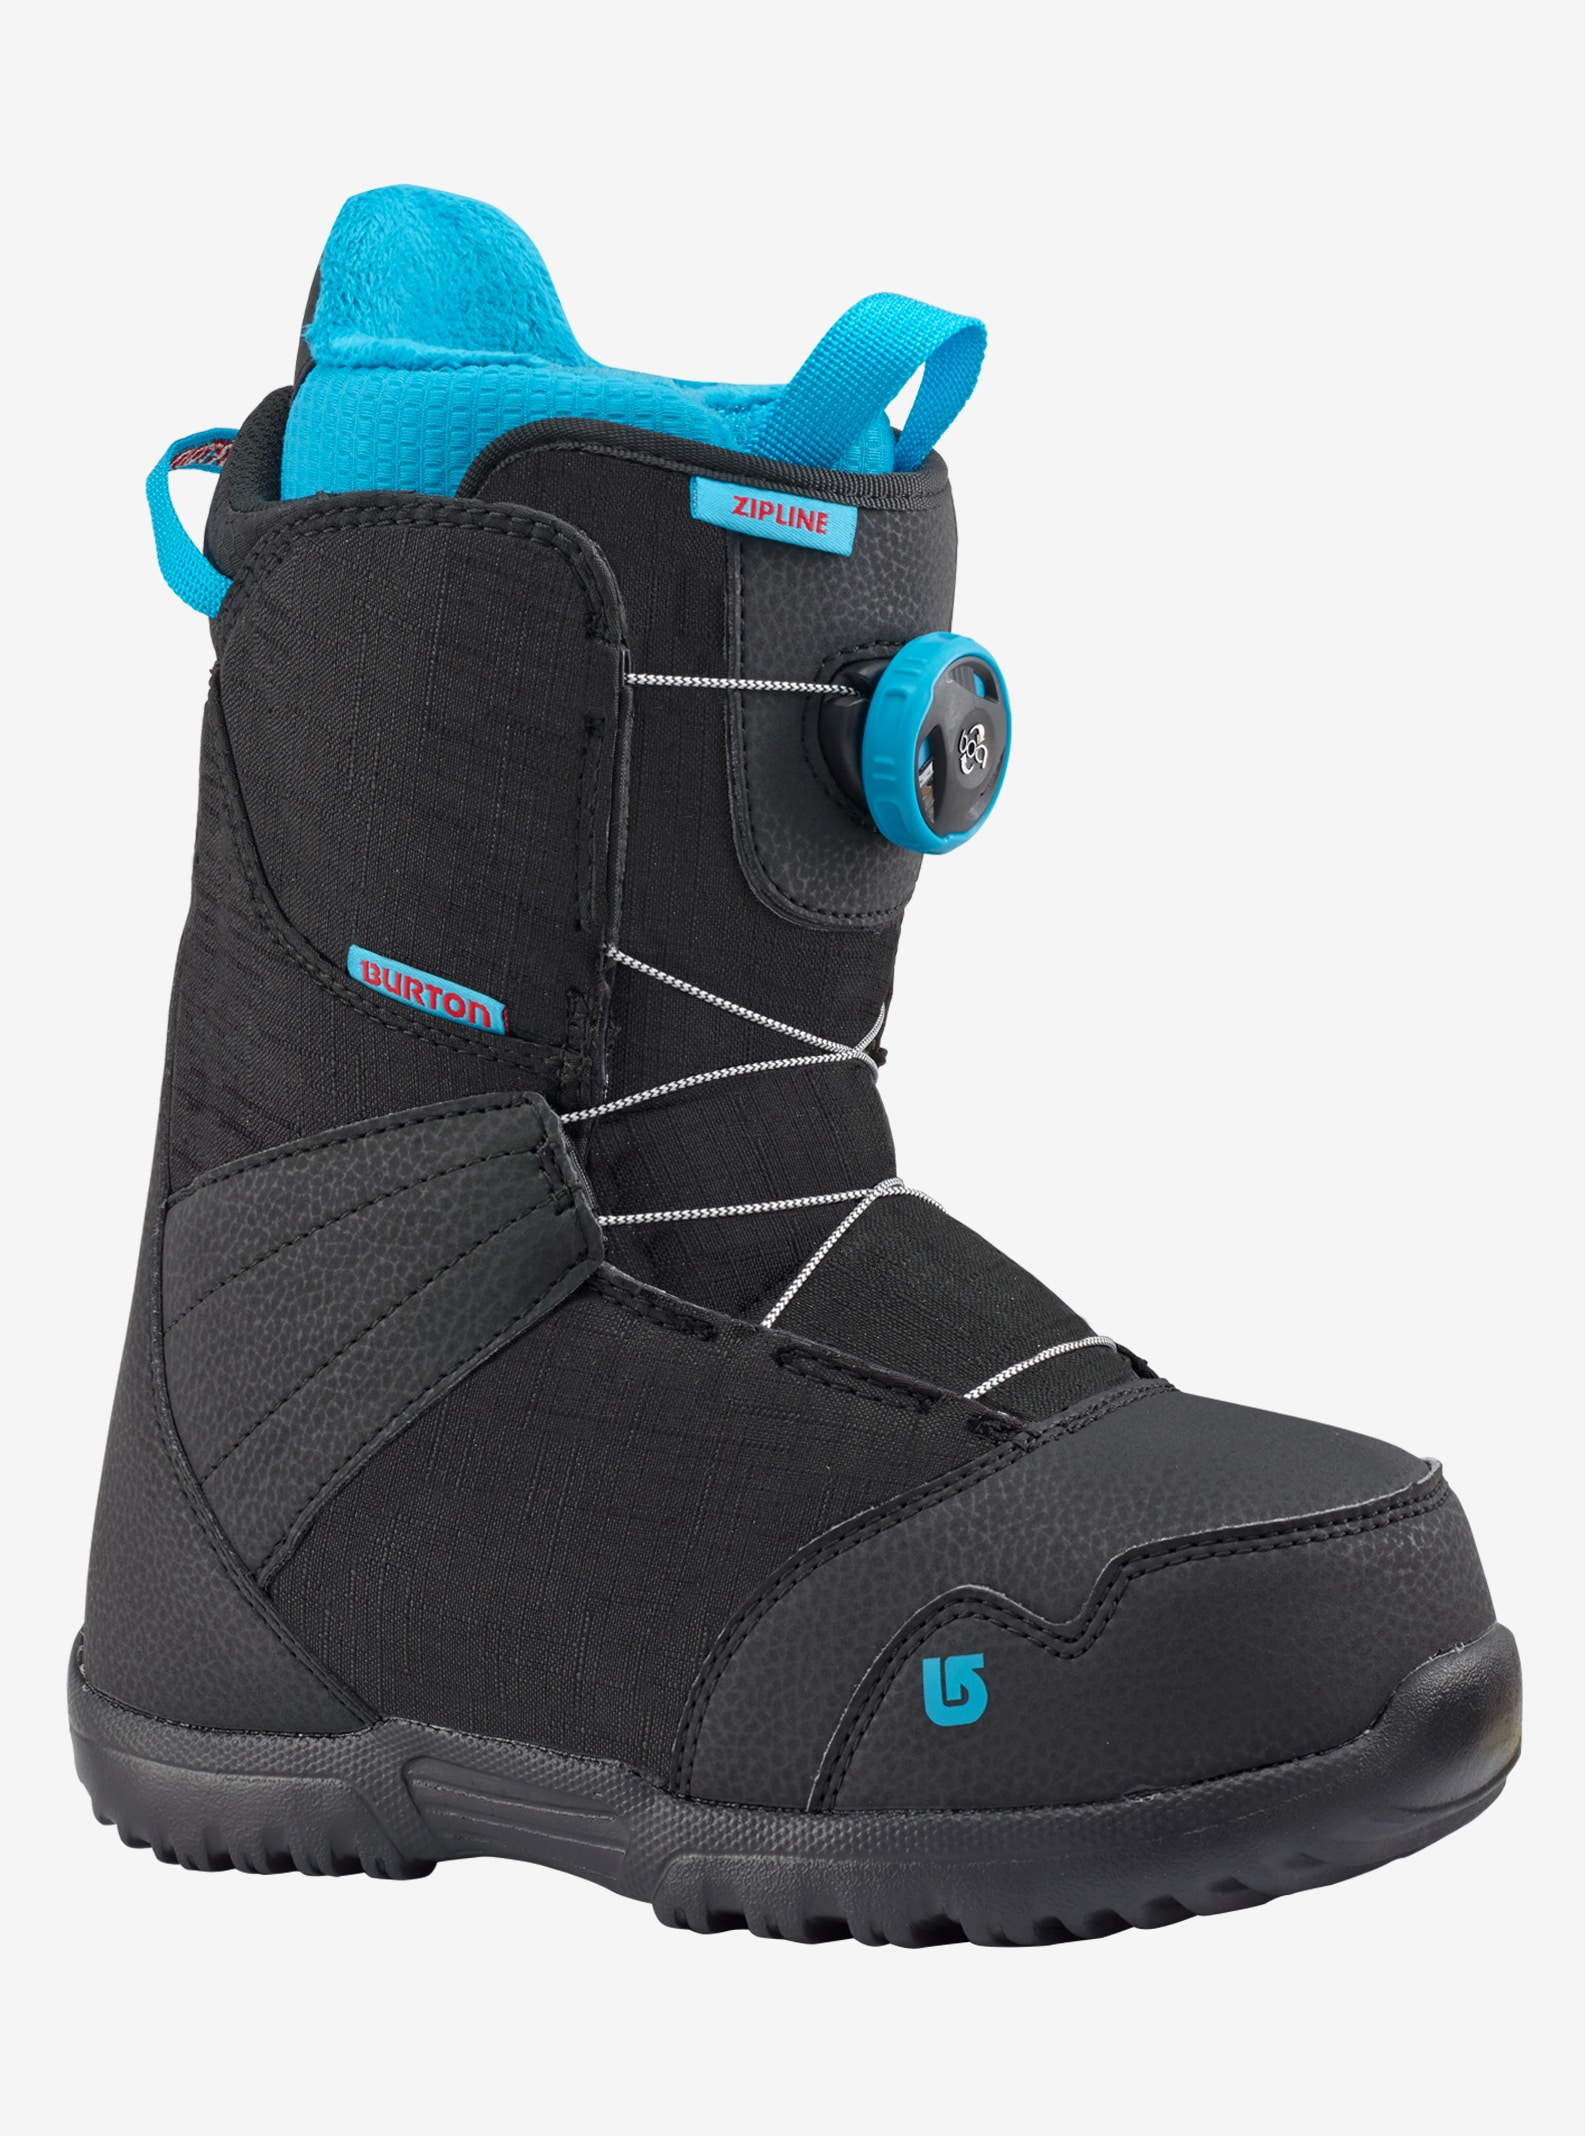 Kids' Burton Zipline Boa® Snowboard Boot shown in Black